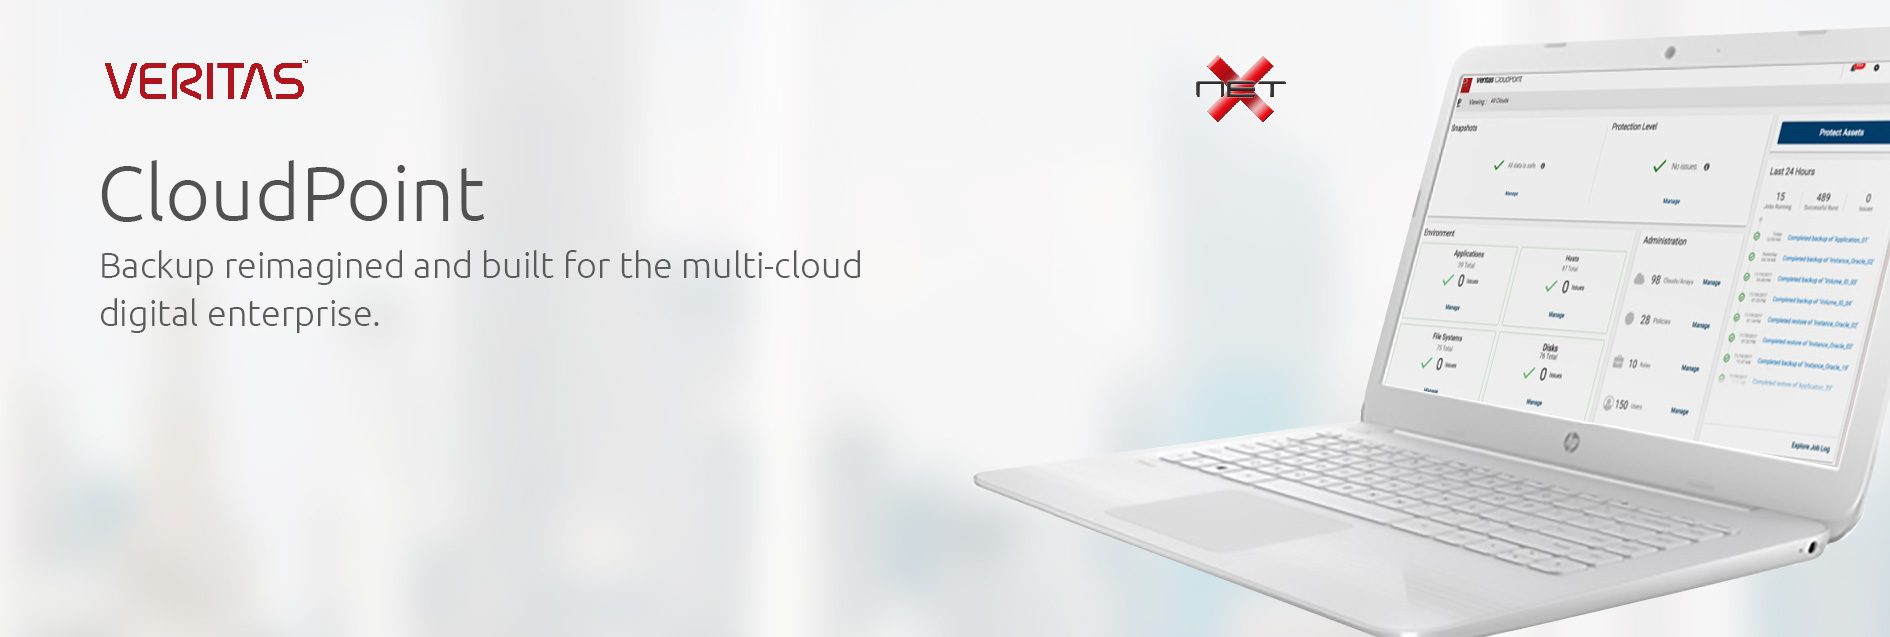 netx-veritas-cloudpoint services banner